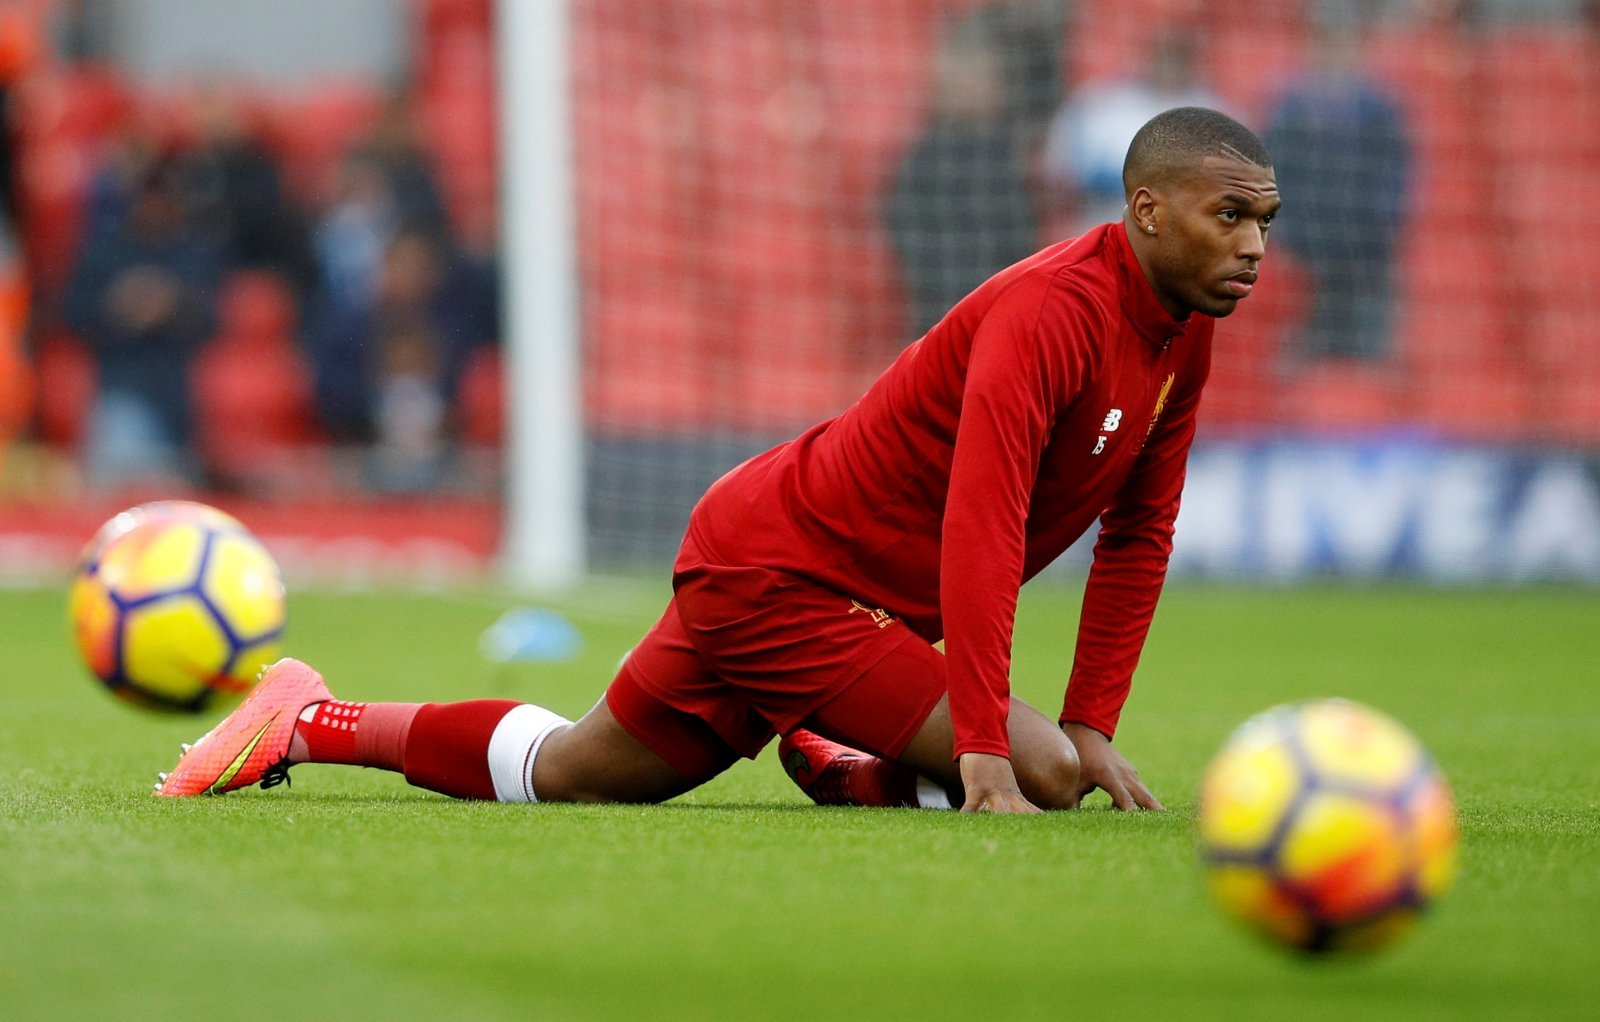 Liverpool fans take to Twitter to call for Daniel Sturridge in Firmino's absence